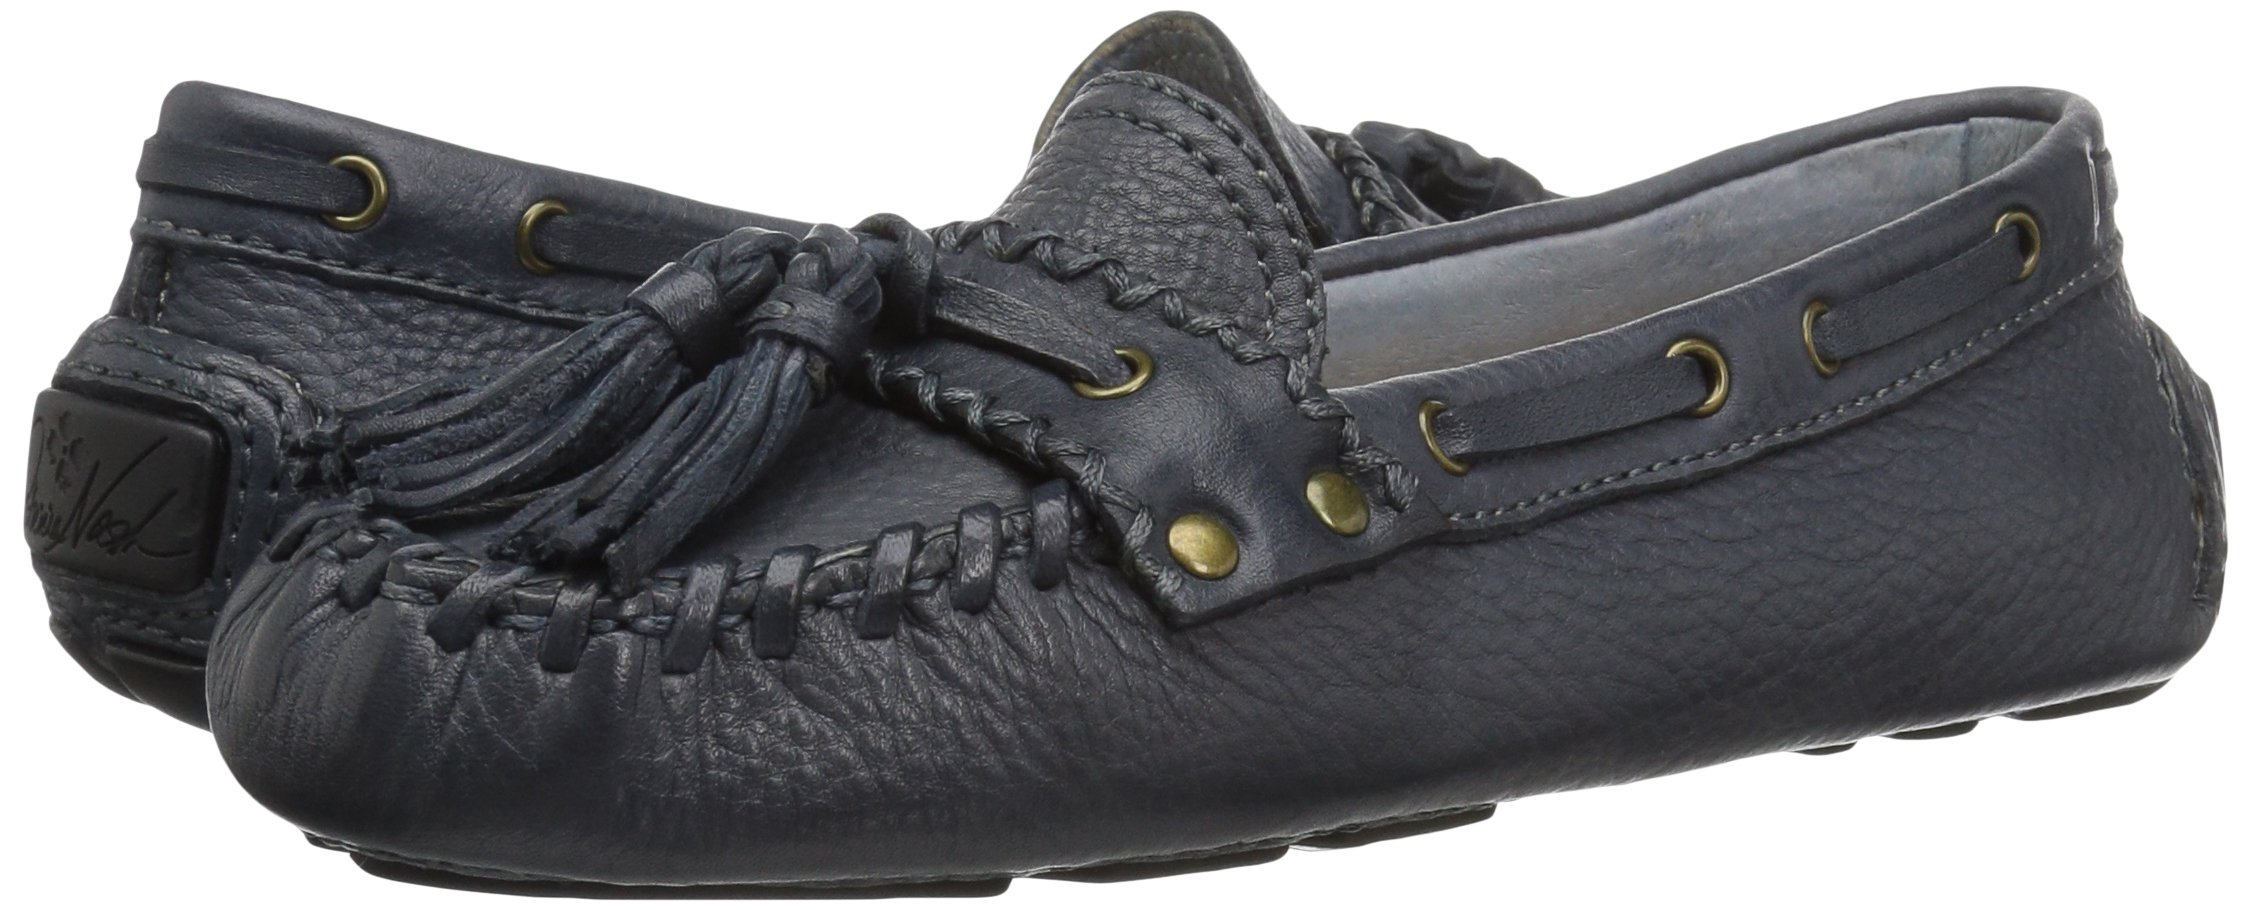 Patricia Nash Women's Domenica Driving Style Loafer, Oxford Blue, 37 B US by Patricia Nash (Image #6)